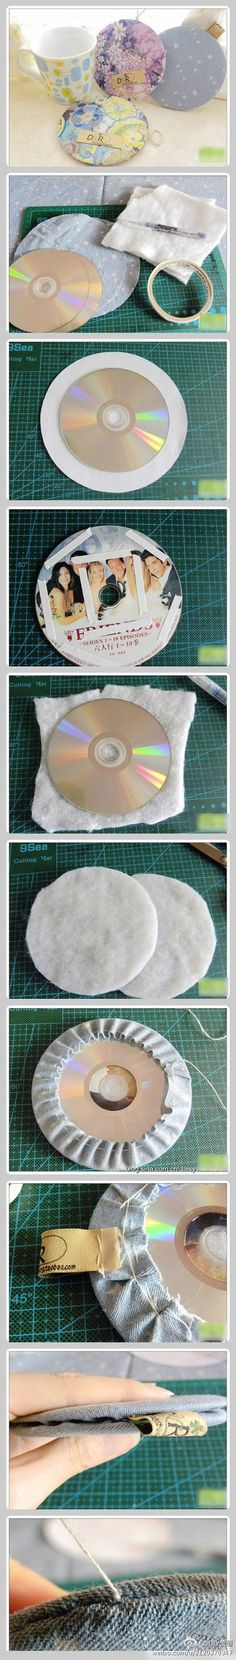 Coasters made from an old cd